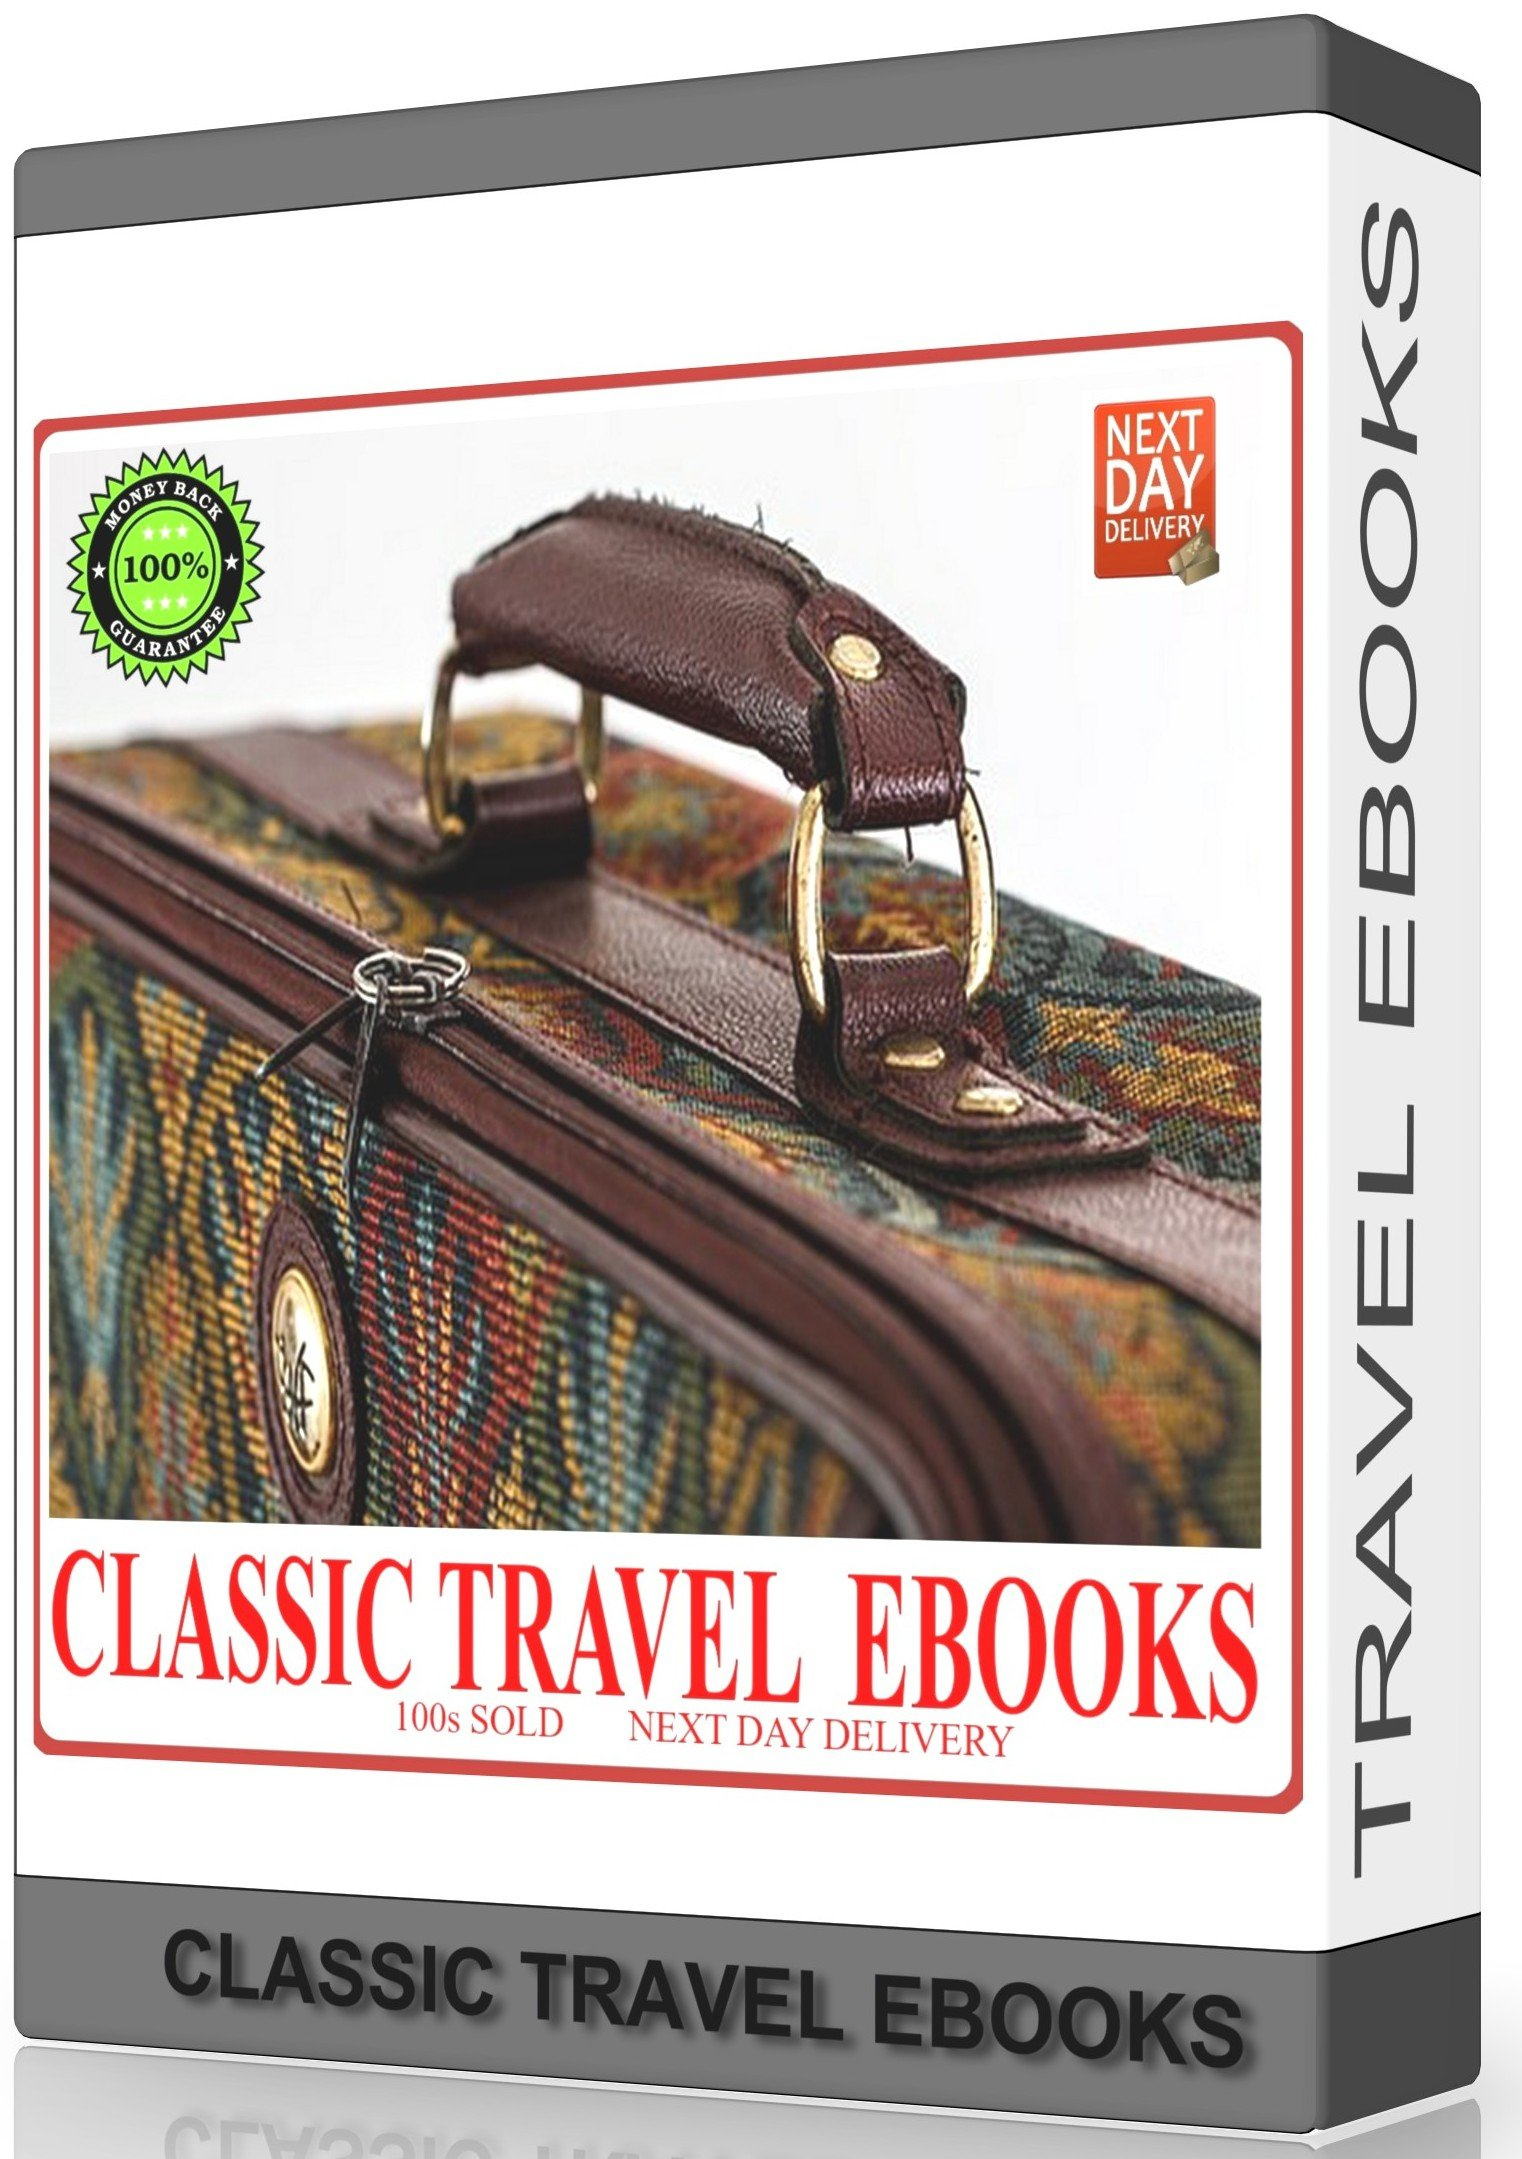 Classic Travel Ebooks For Kindle, Sony Readers